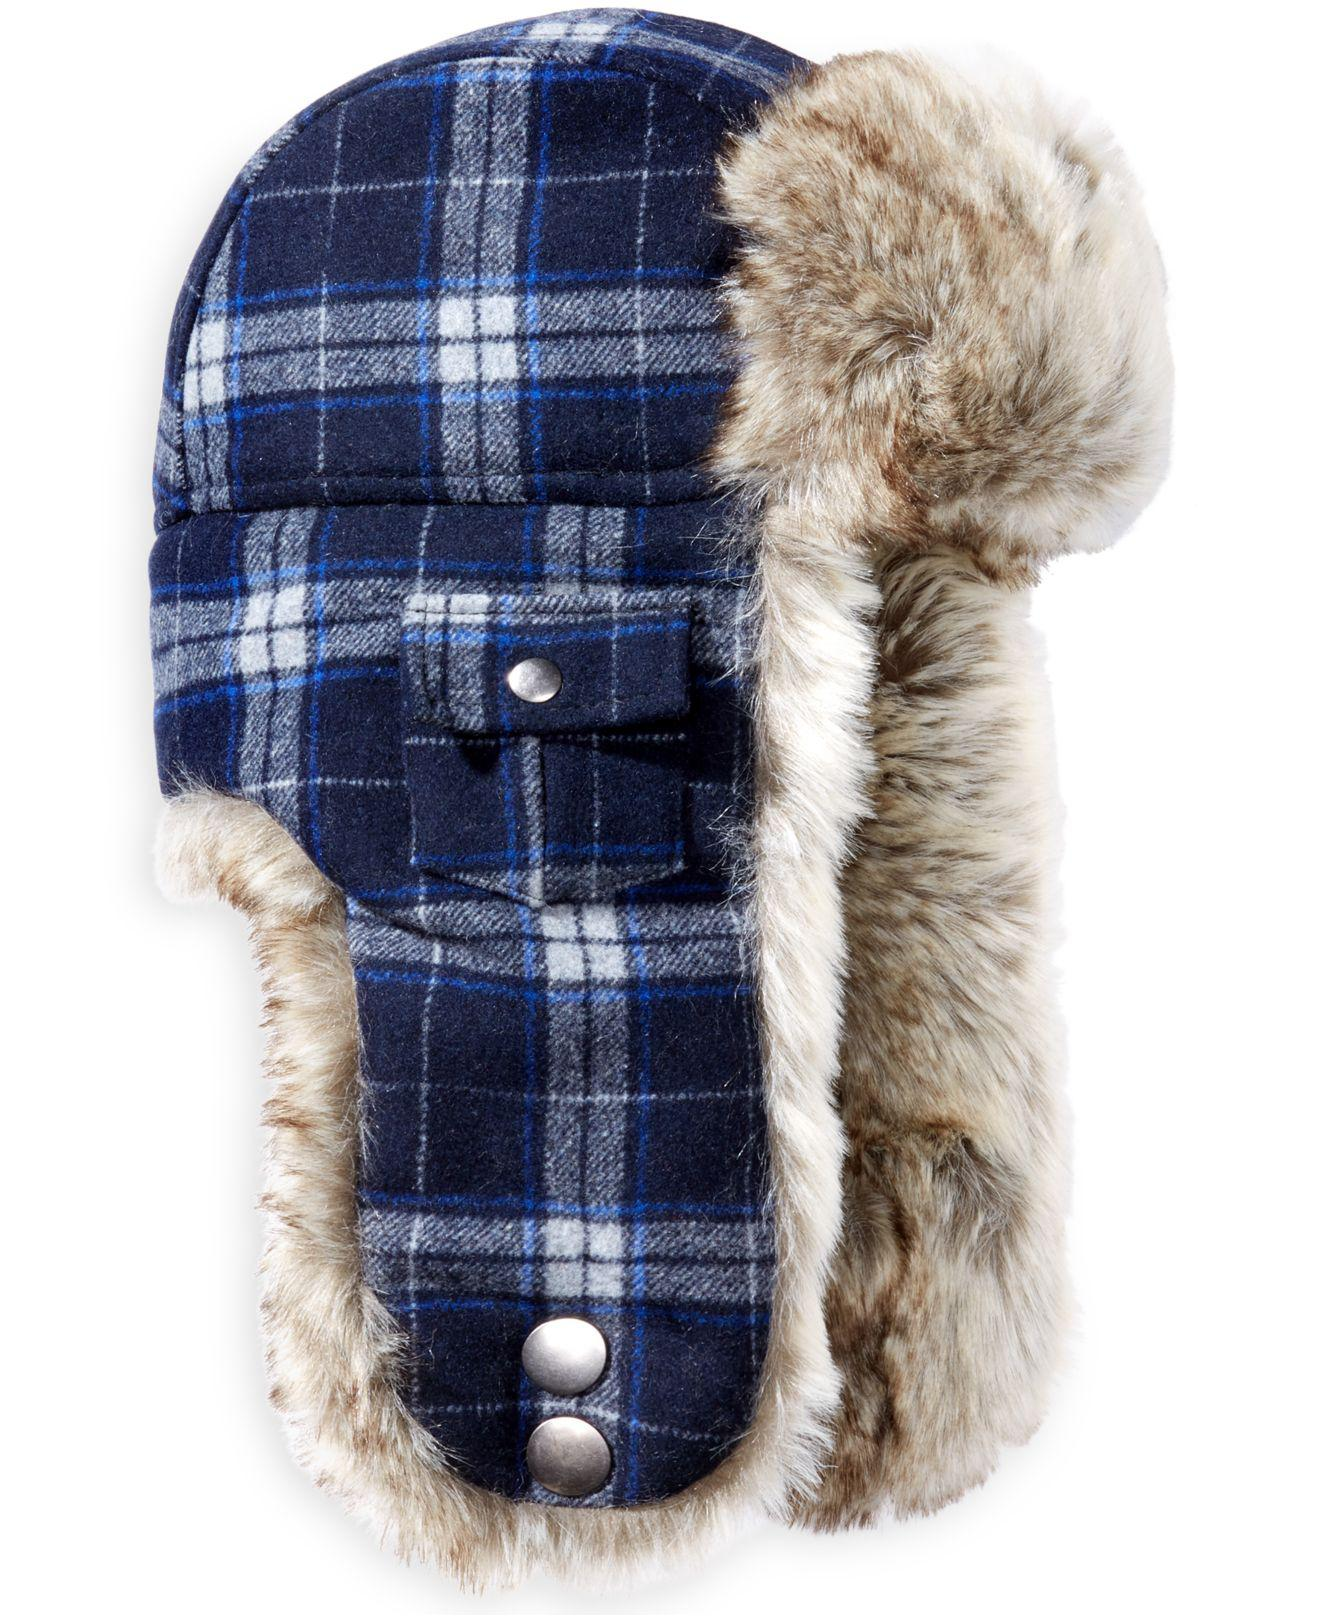 b35a1f4e0329c Woolrich Plaid Arctic Trapper Hat With Faux-fur Earflaps in Blue for ...